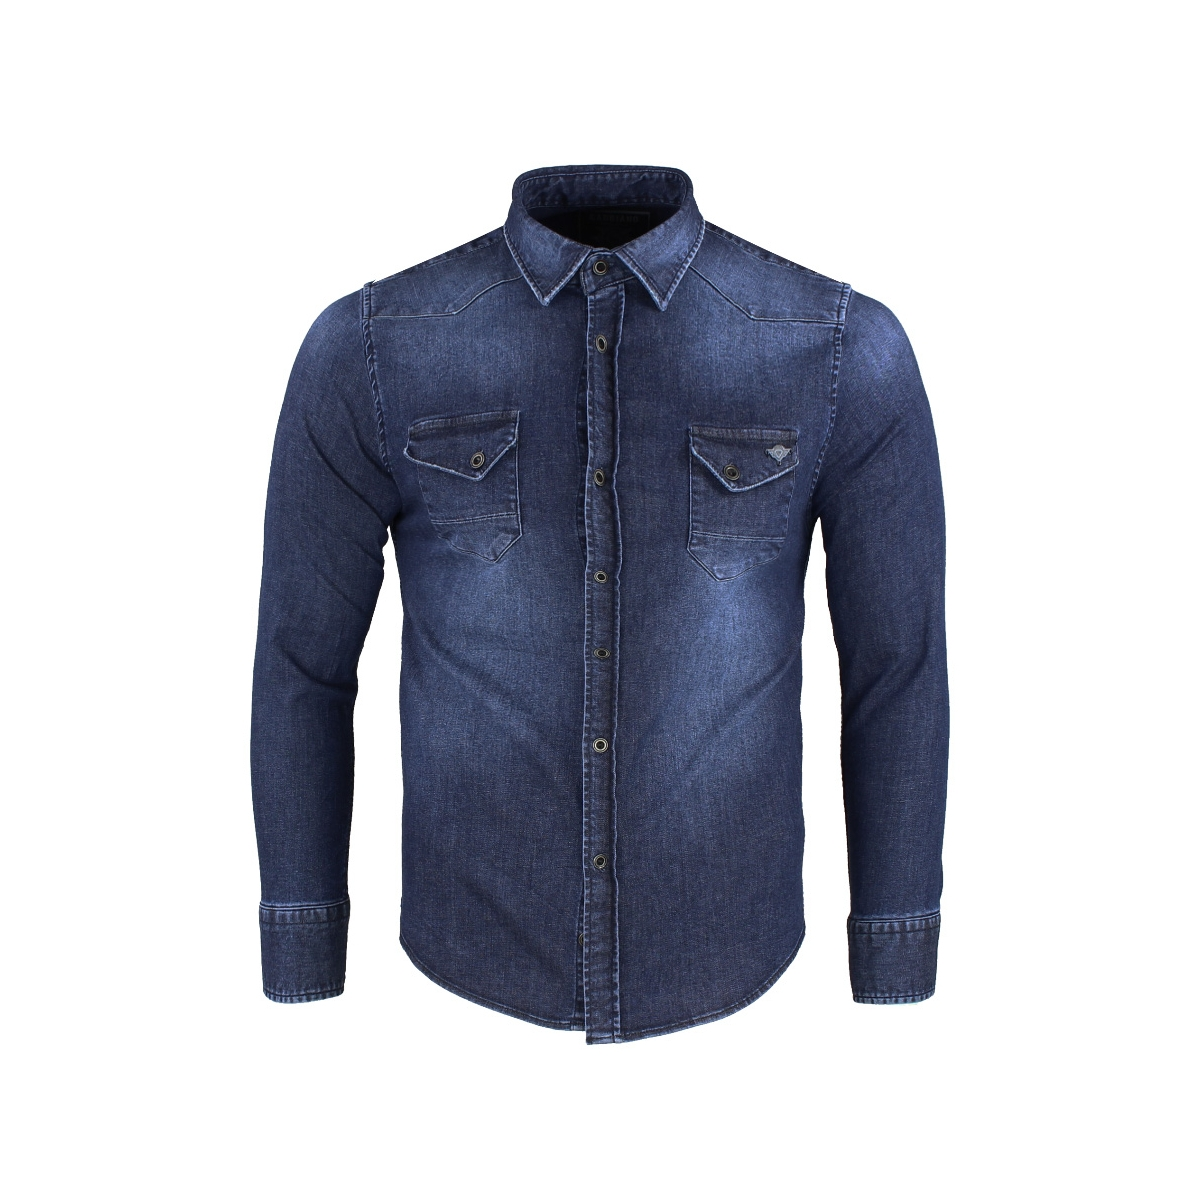 shirt 33803 gabbiano overhemd denim blue